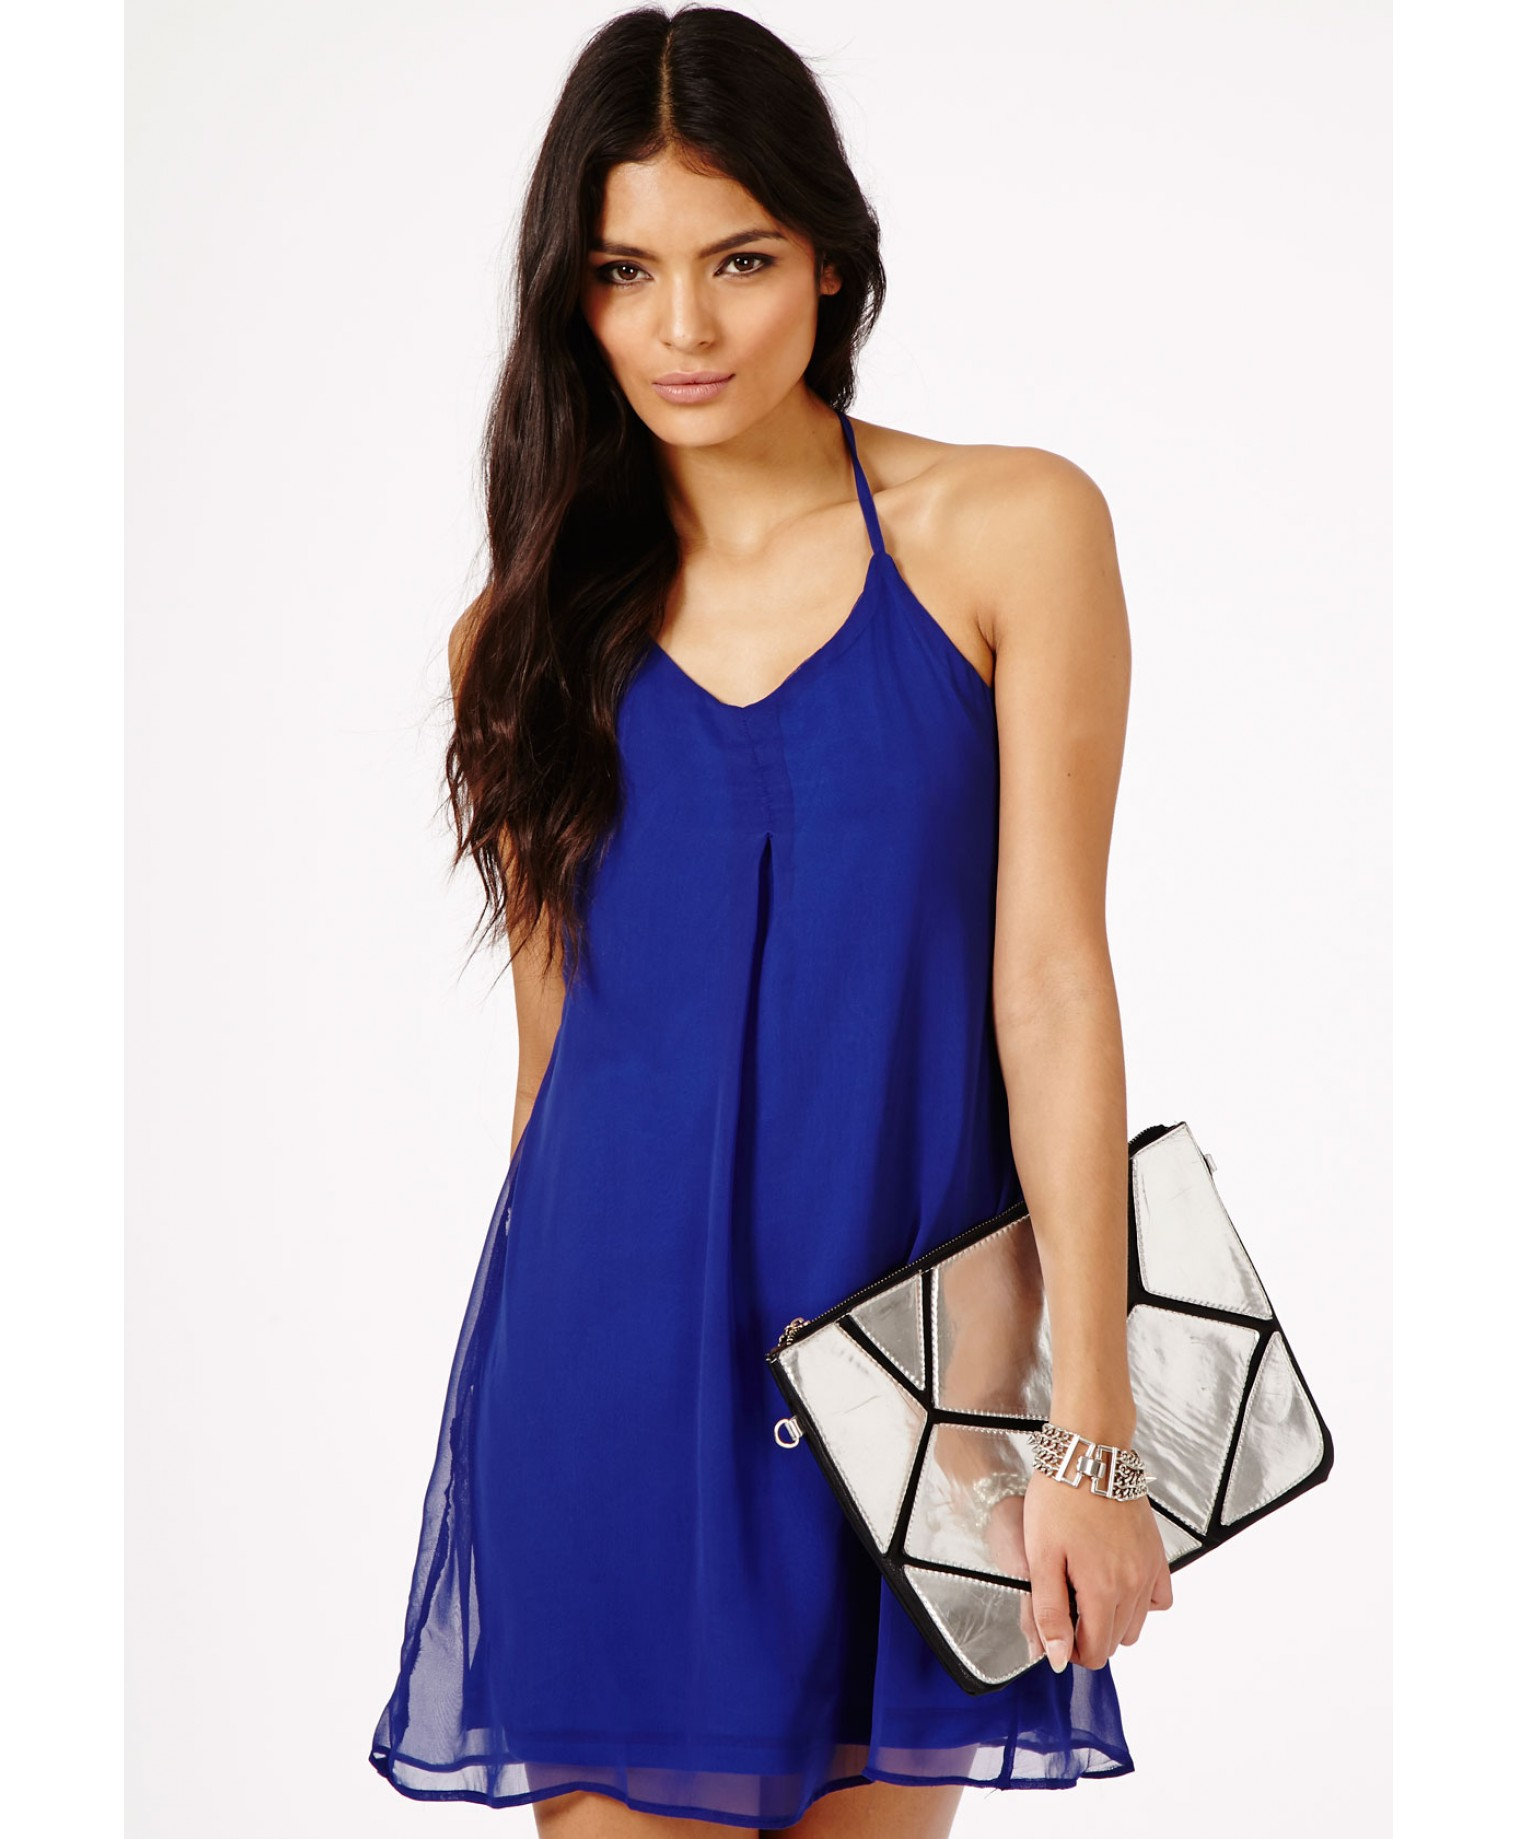 ce4901d5399f1 Lyst - Missguided Amaka Halterneck Strappy Swing Dress in Cobalt ...